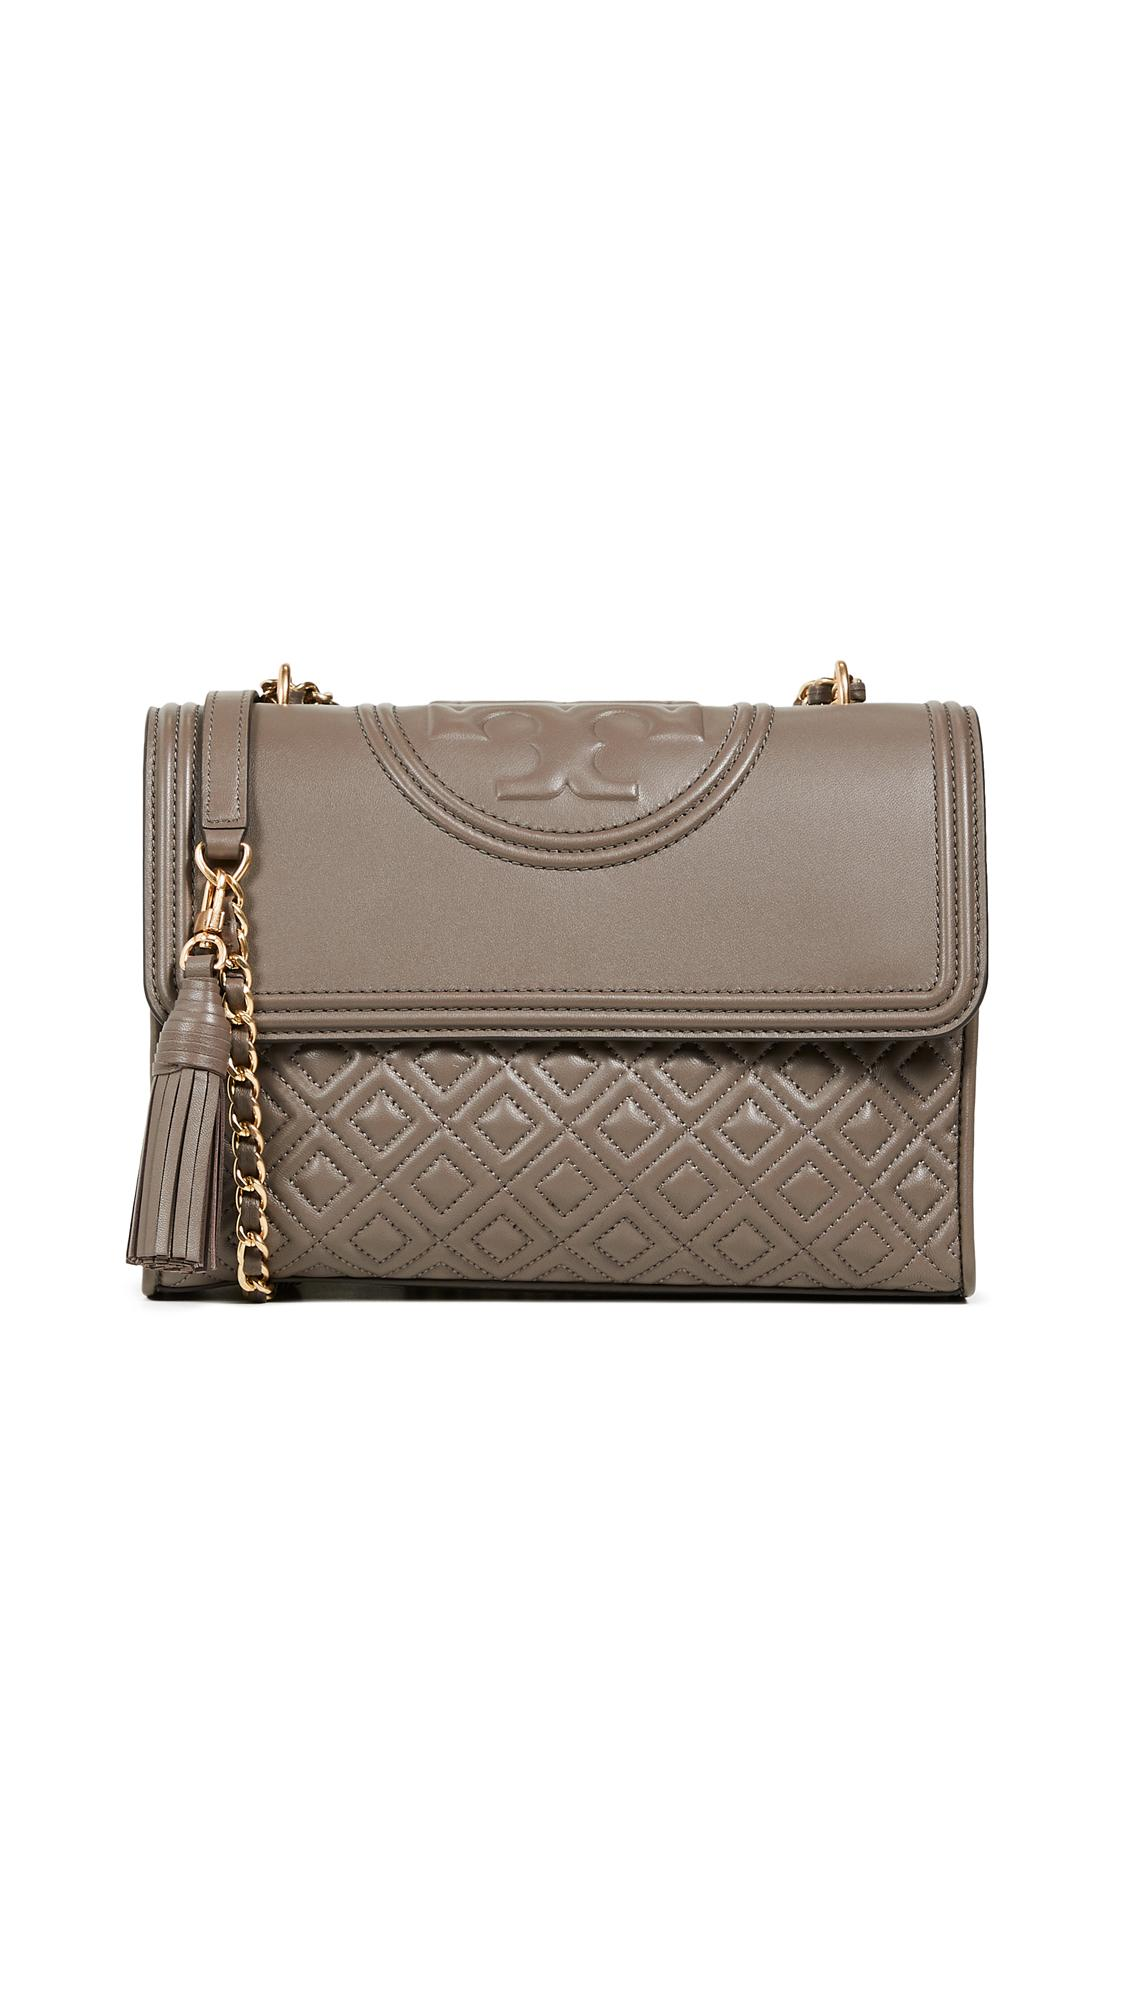 2c4d1953863 Tory Burch Fleming Convertible Shoulder Bag In Silver Maple | ModeSens